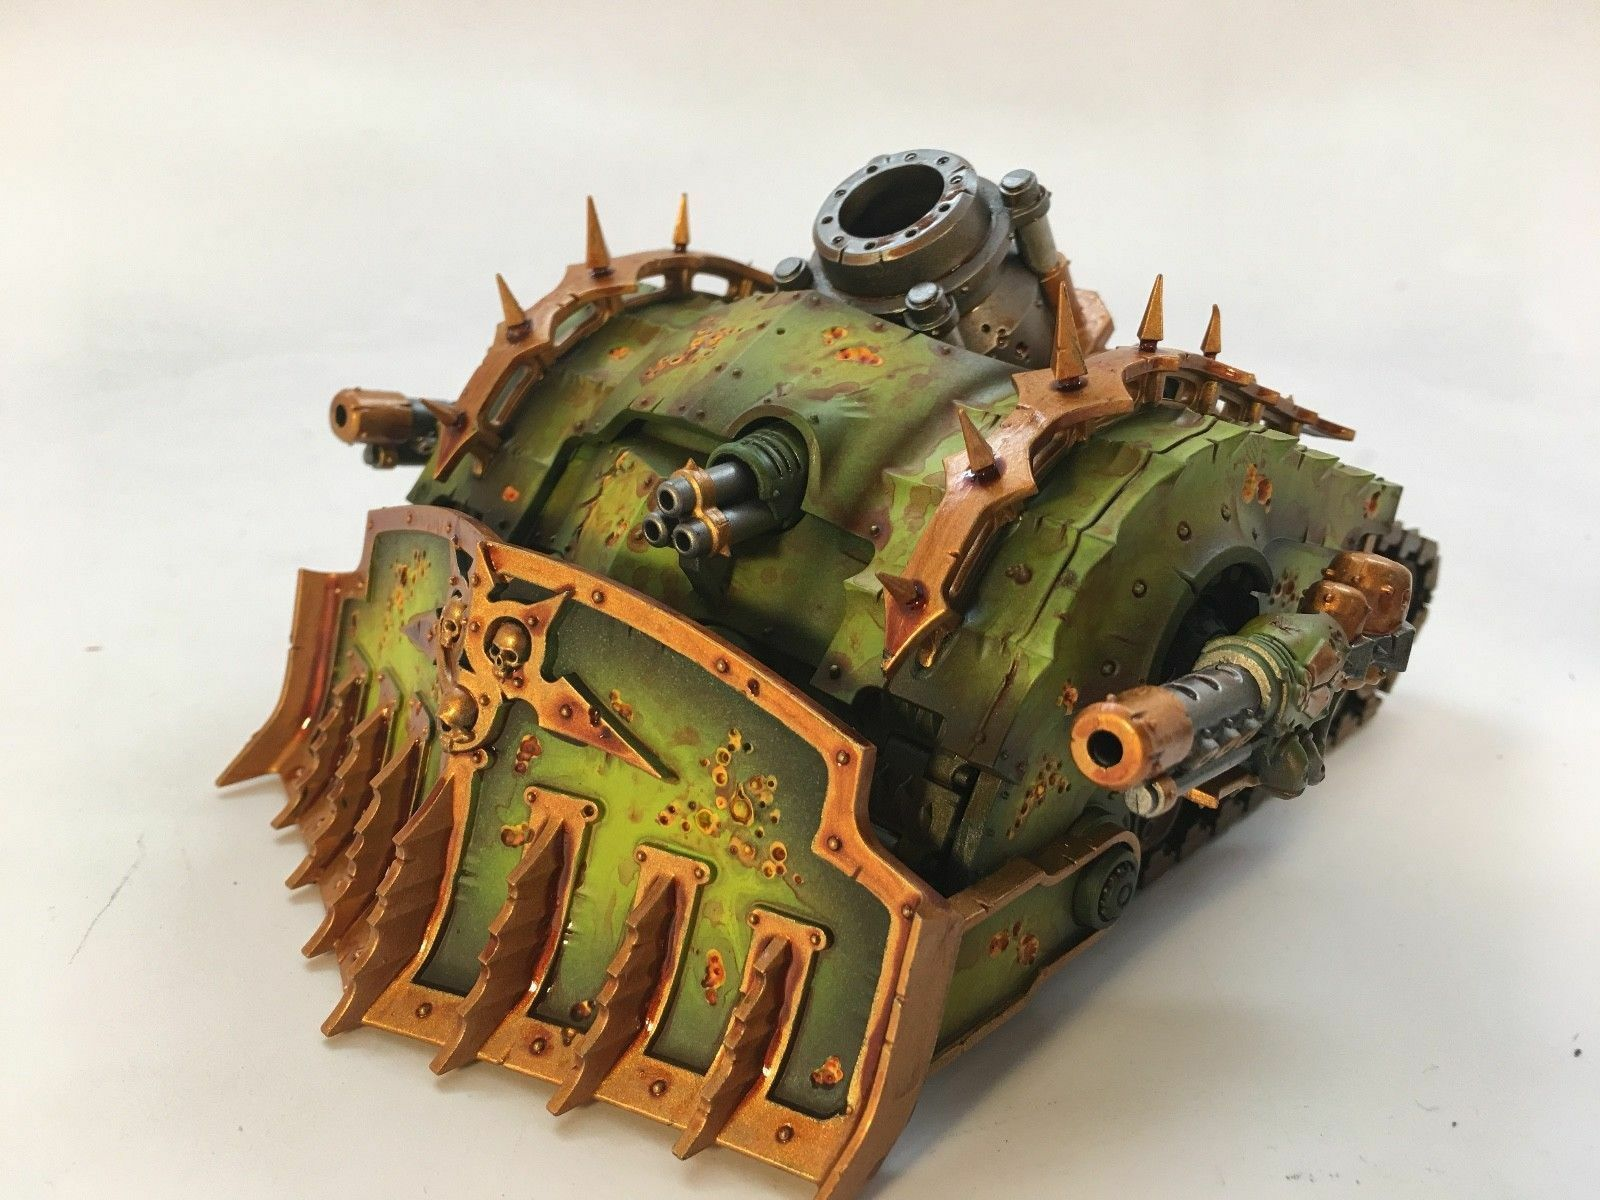 Plagueburst Crawler Death Guard Painted and Magnetized Magnetized Magnetized Warhammer 40k 5cf3e9